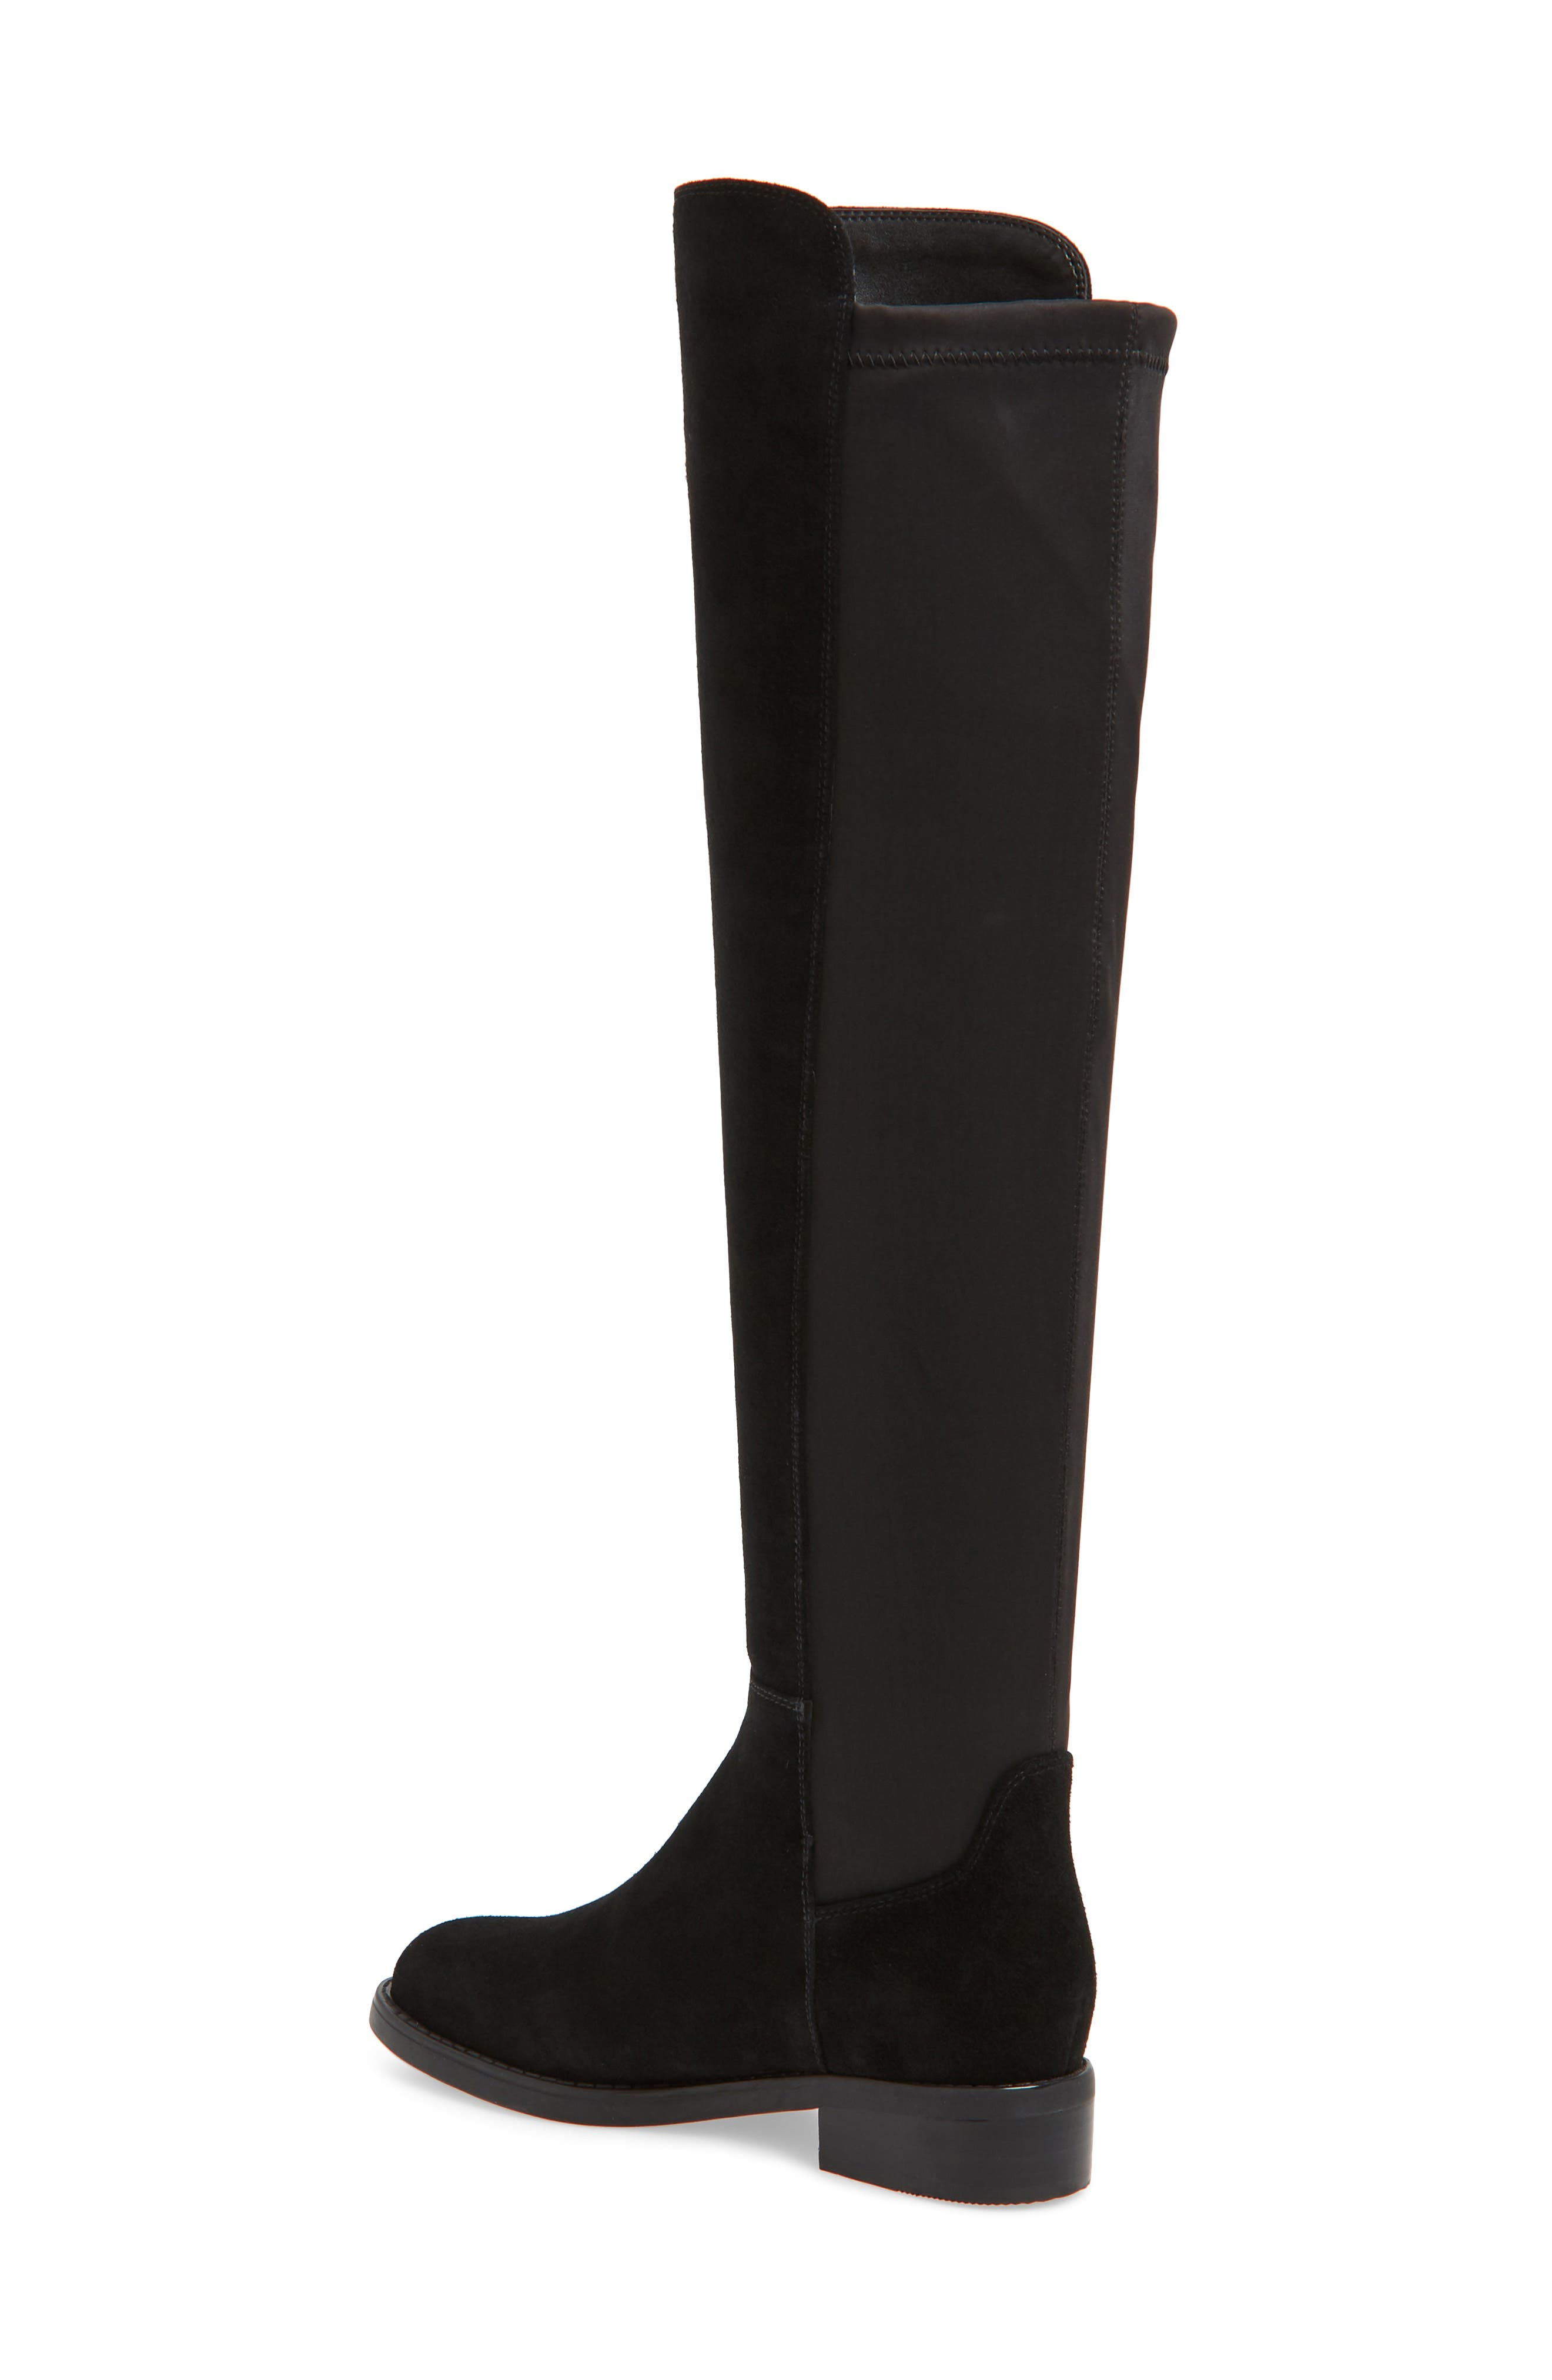 BLONDO, Danny Over the Knee Waterproof Boot, Alternate thumbnail 2, color, 001